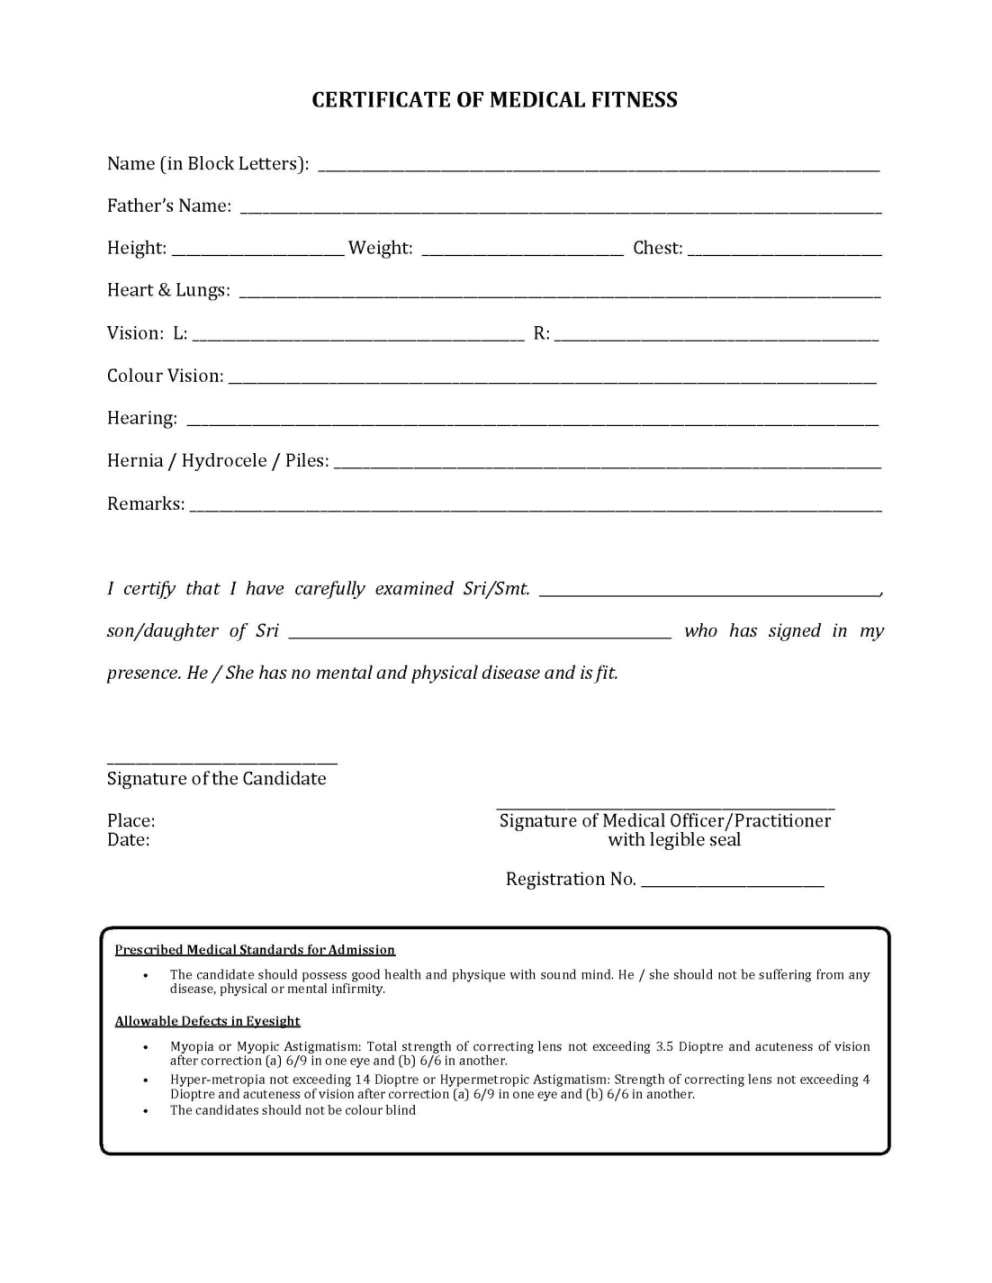 Physical Fitness Certificate Format Pdf  Kayafitnessco with regard to Quality Physical Fitness Certificate Templates